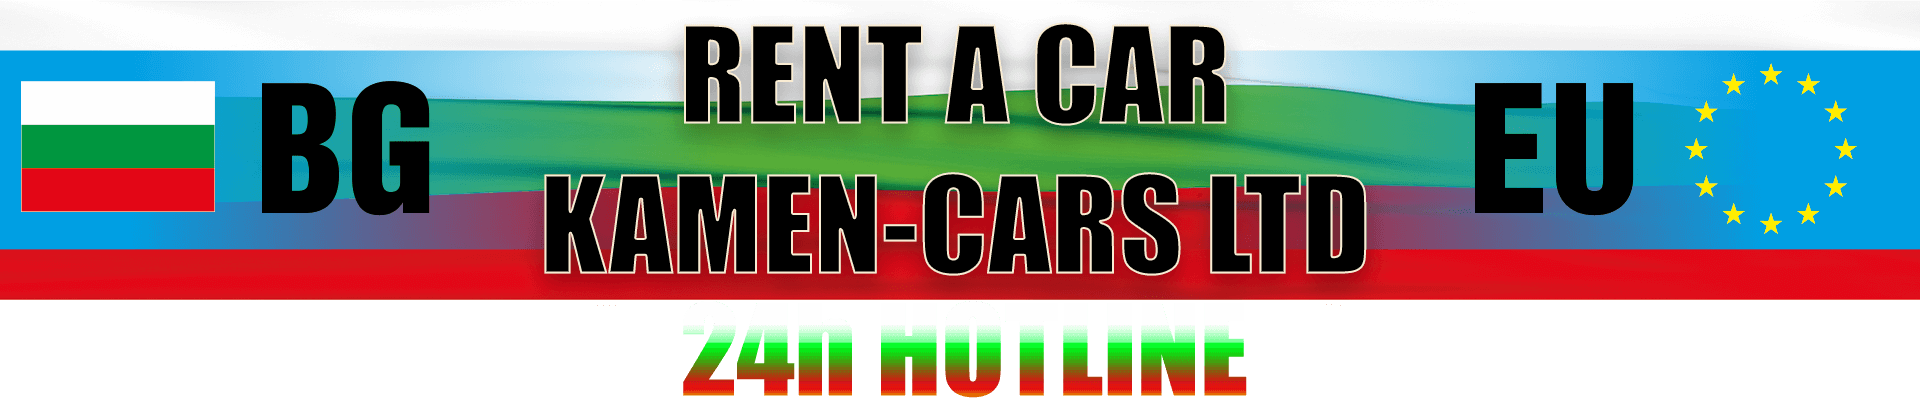 Автомобили под наем, Rent a car Kamen-Cars Ltd